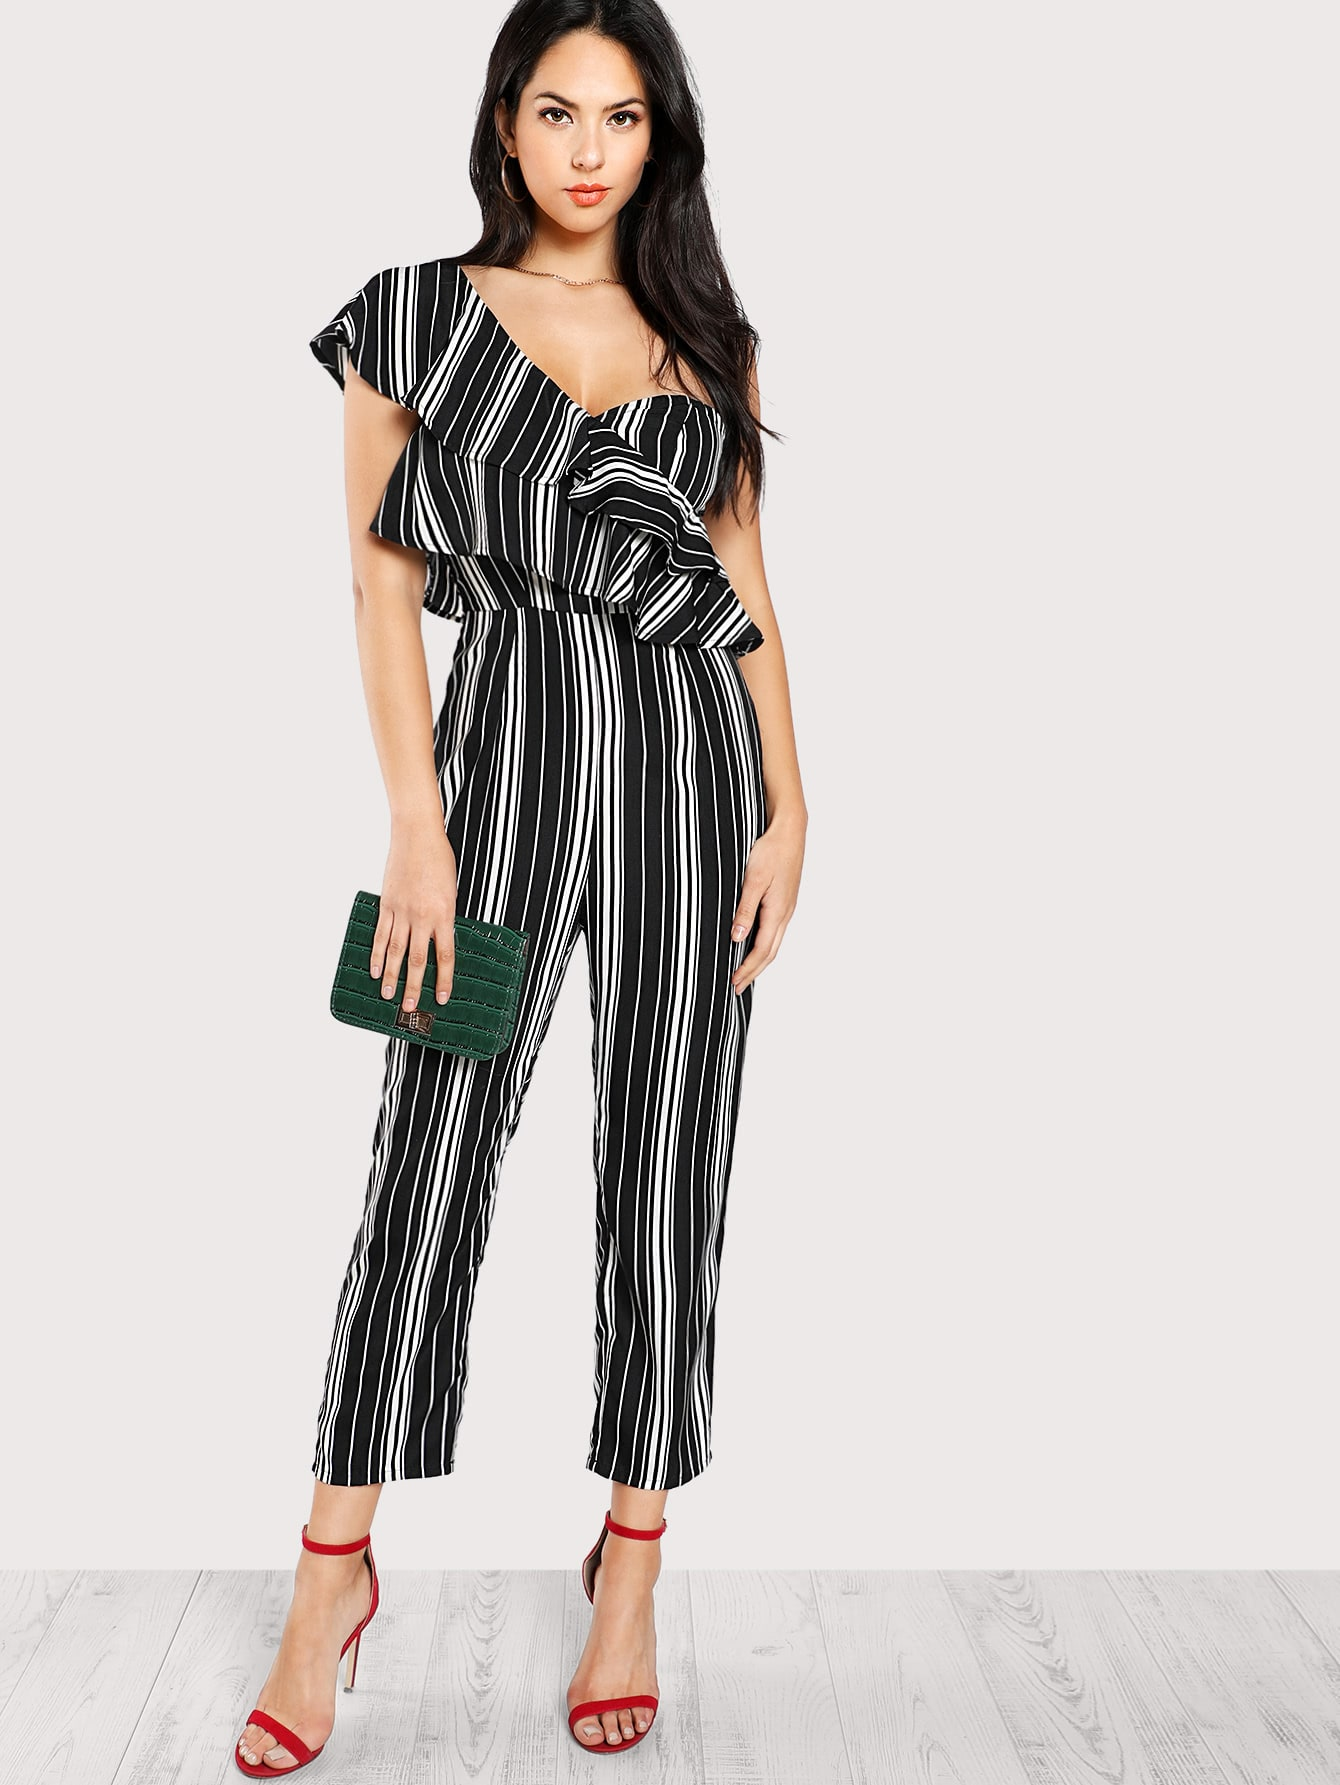 Asymmetrical Flounce Layered Shoulder Striped Jumpsuit army green one shoulder frill layered design jumpsuit